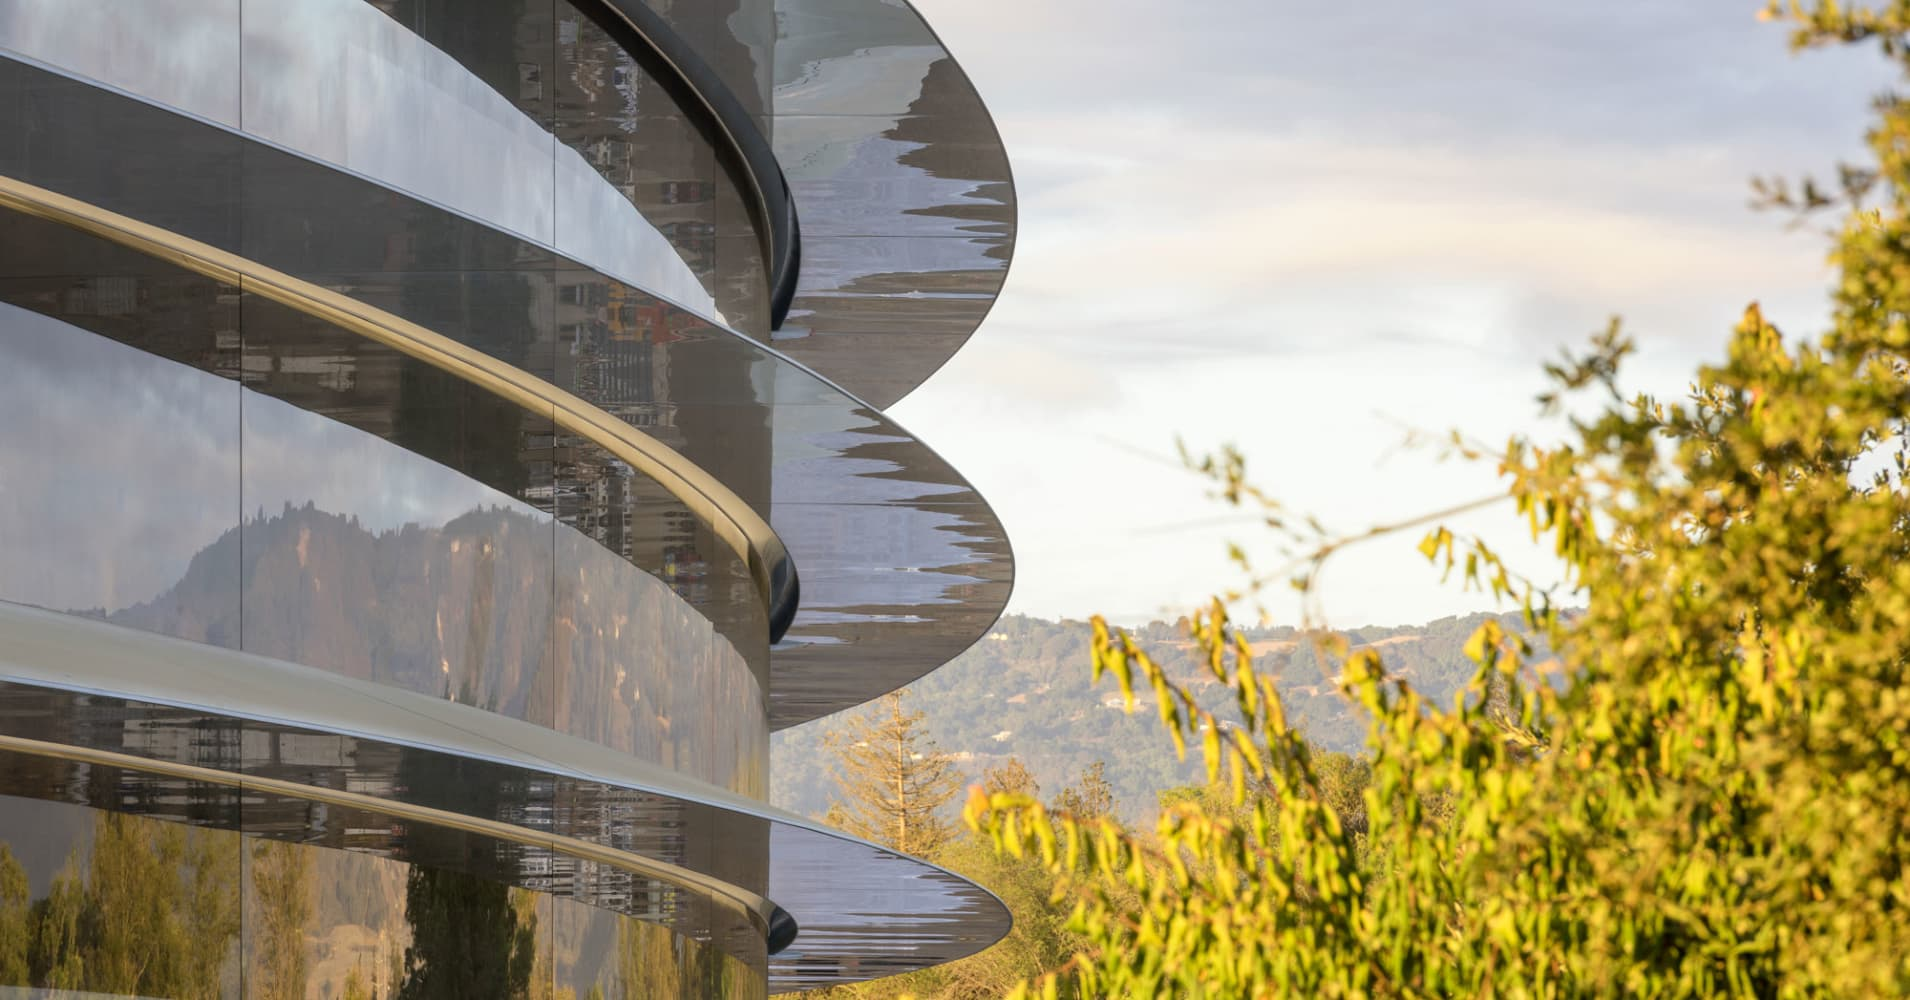 Apples New Campus Is Nearly Finished